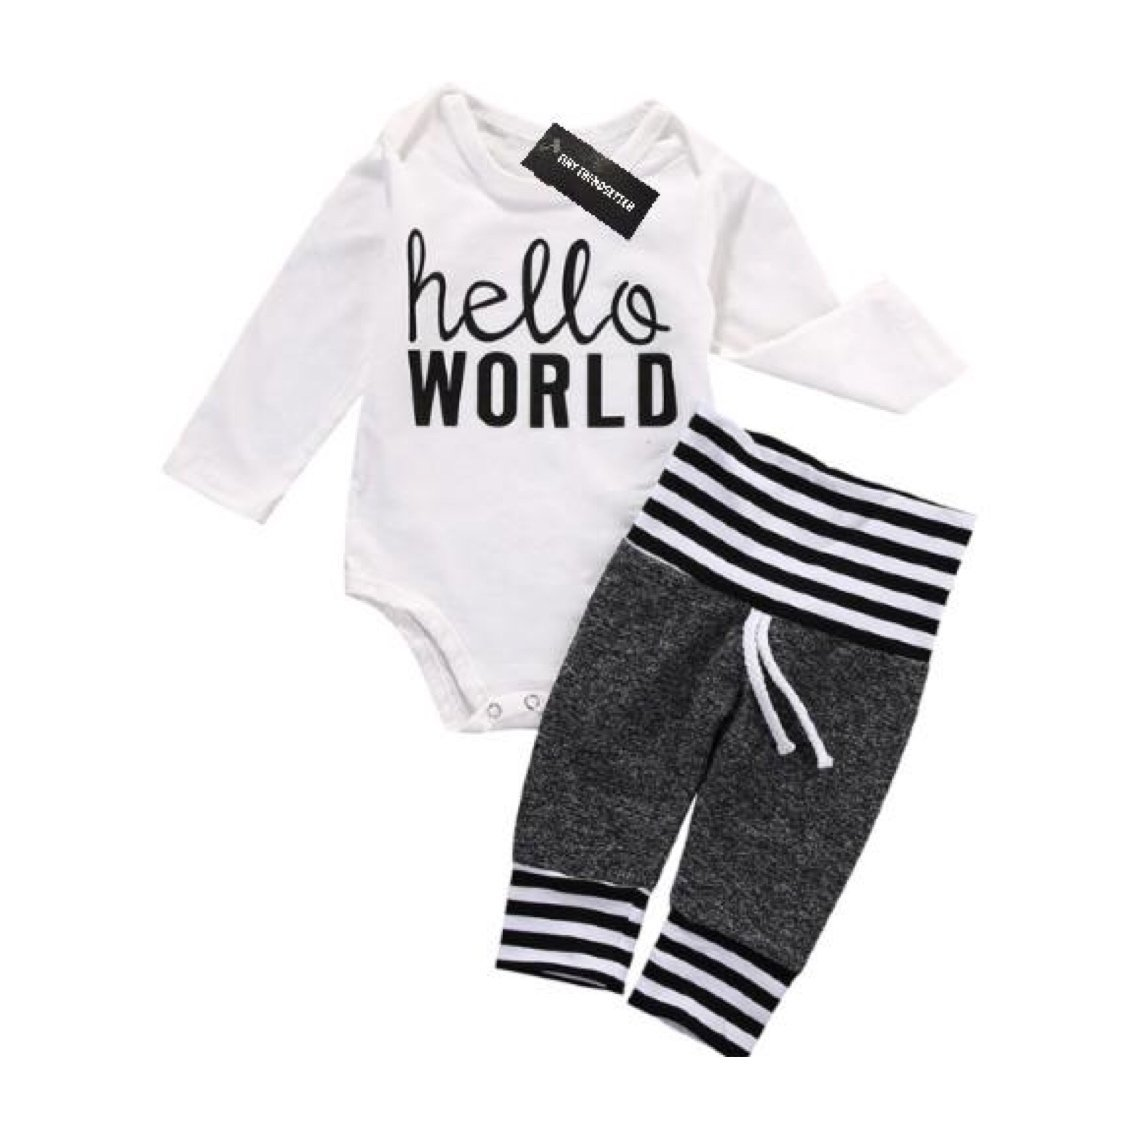 Hello World Longsleeve Baby Onesie Outfit Tiny Trendsetter